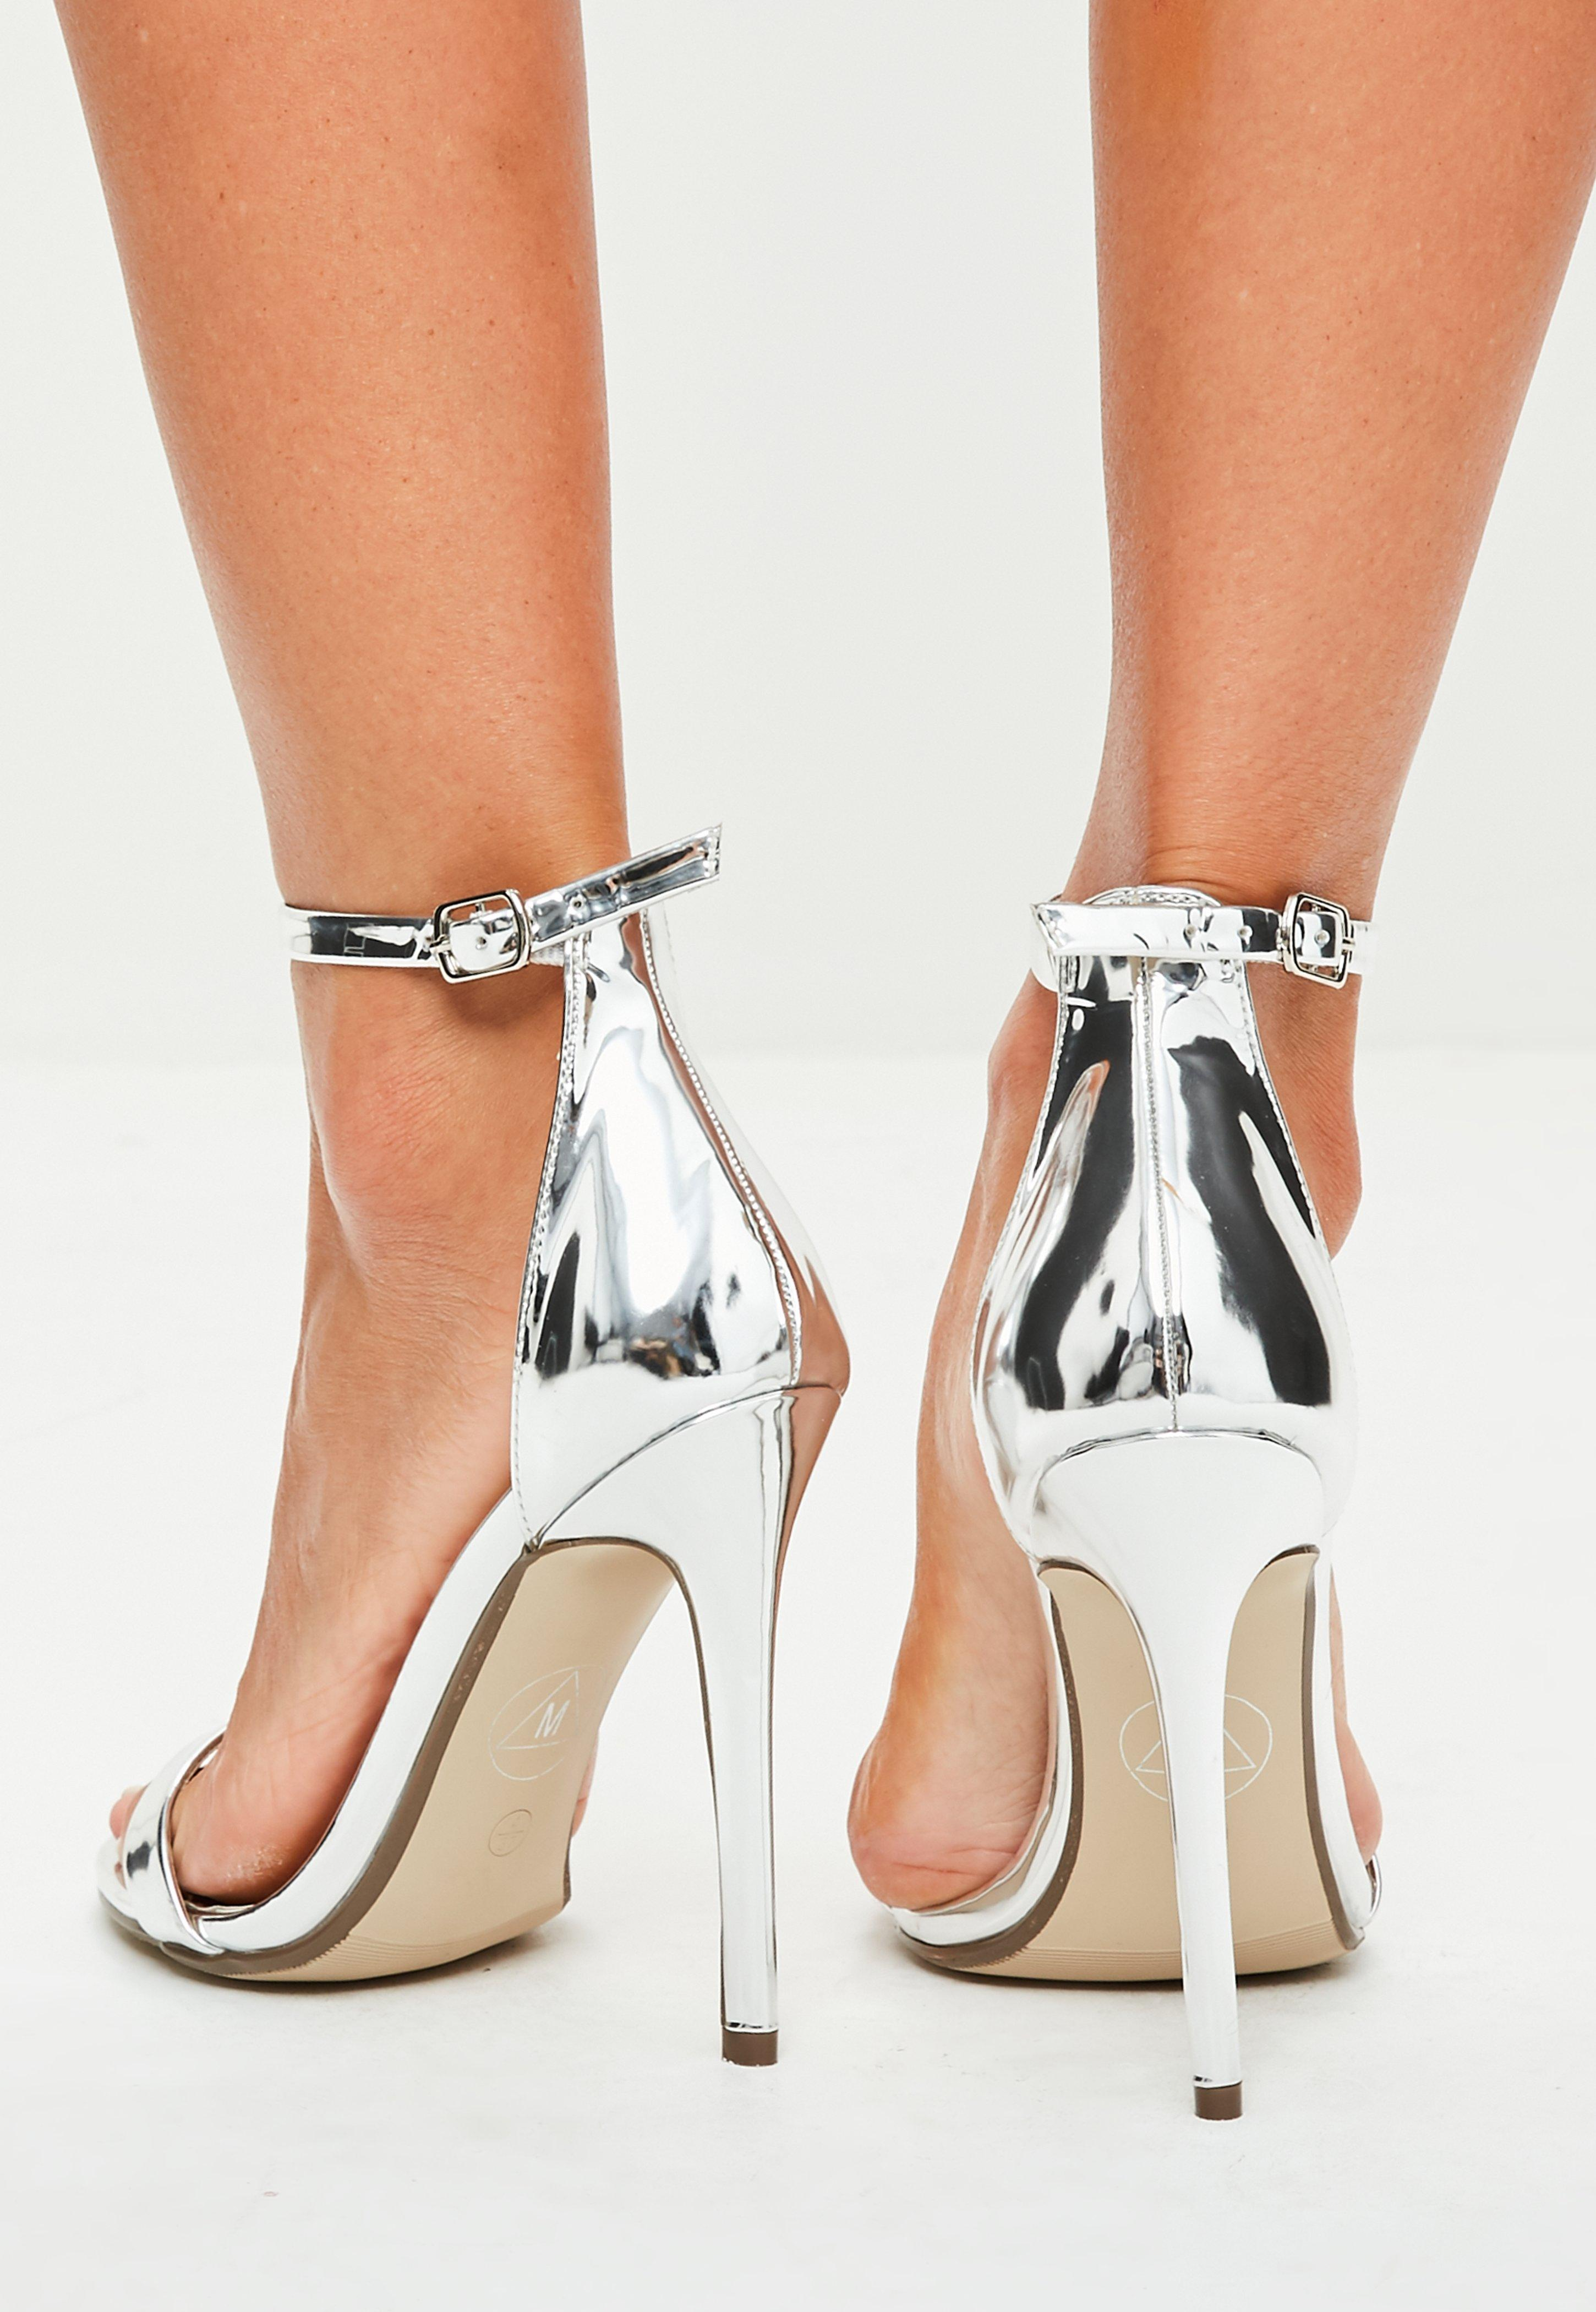 647e8c72e2f Lyst - Missguided Silver Two Strap Barley There Heels in Metallic